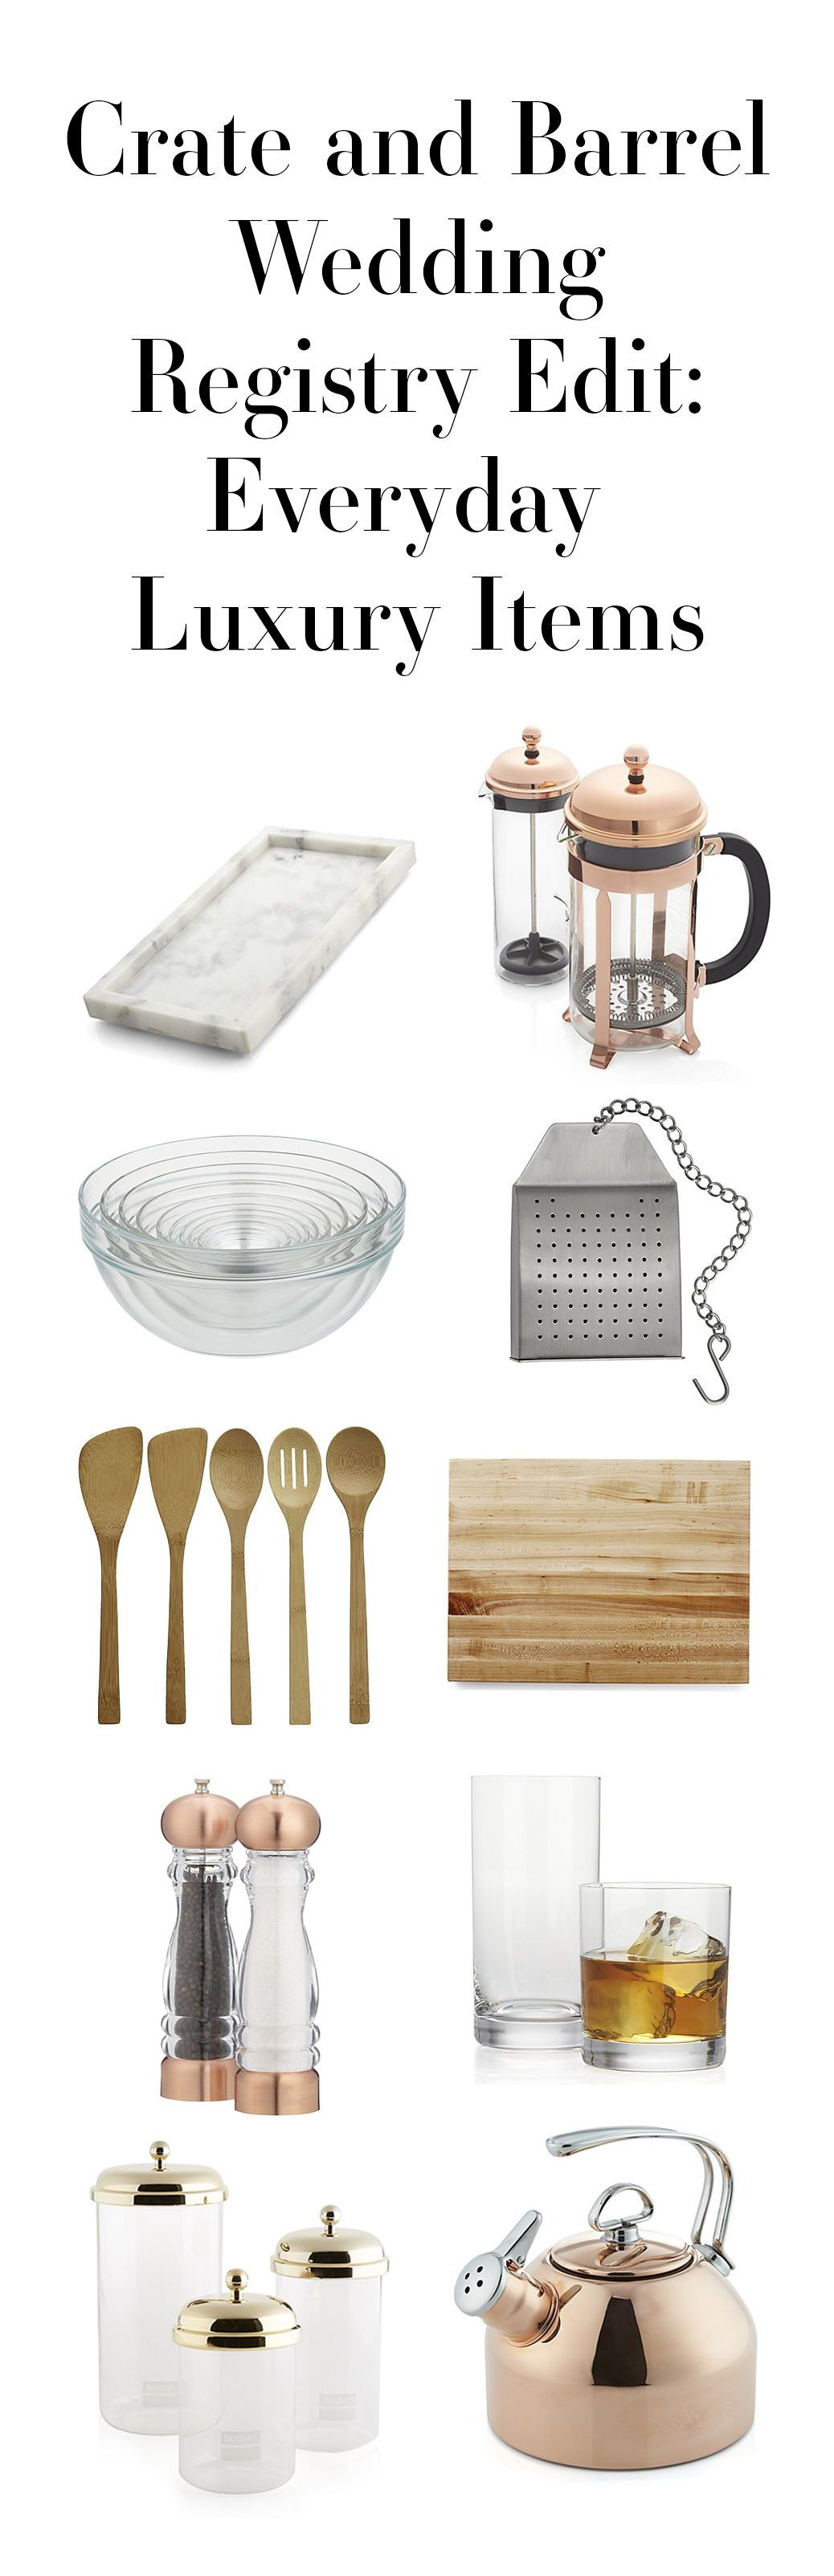 Our luxe gift registry picks from Crate and Barrel (you